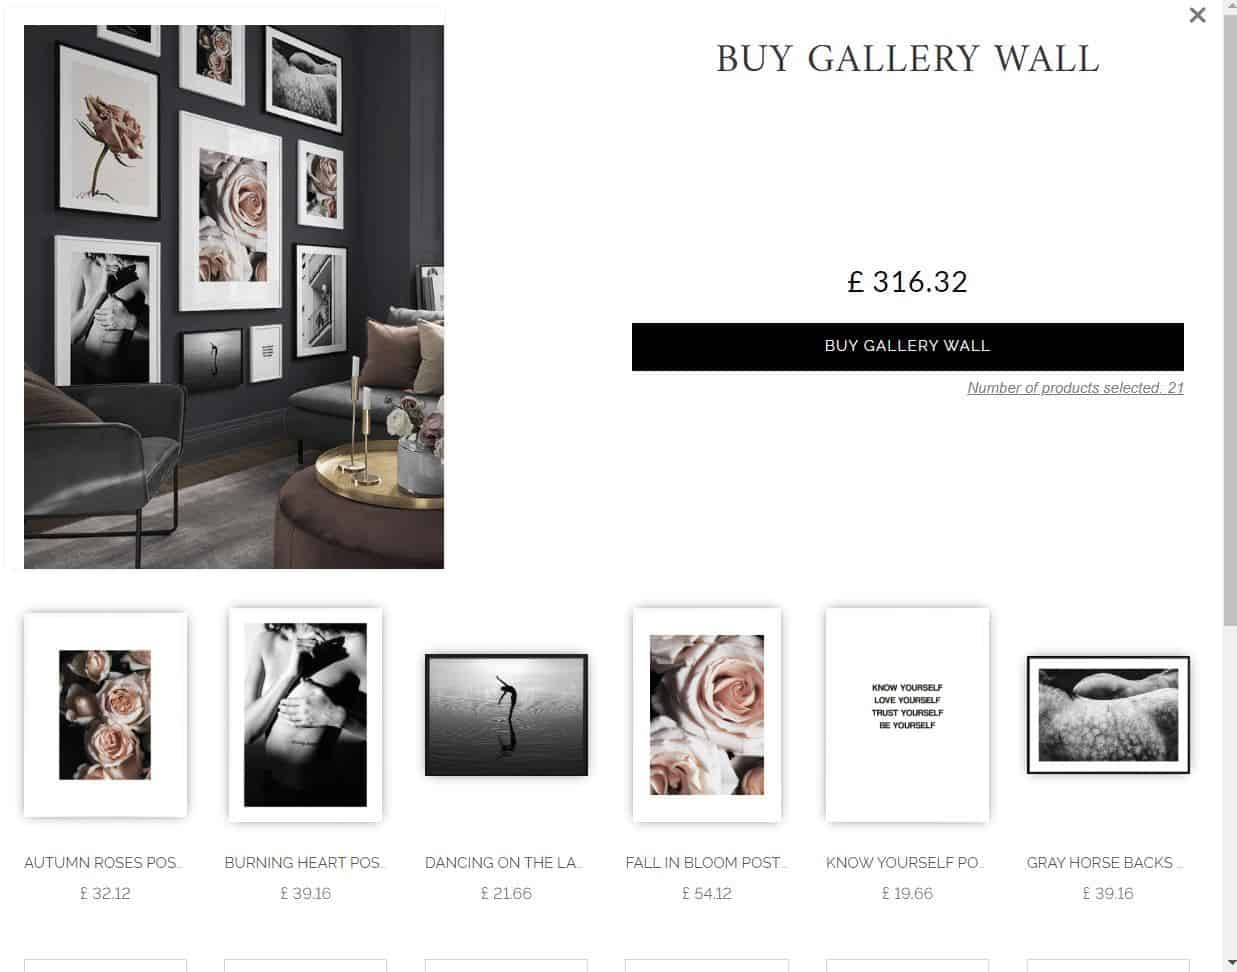 A screen shot of the Desenio website showing artwork in a gallery wall